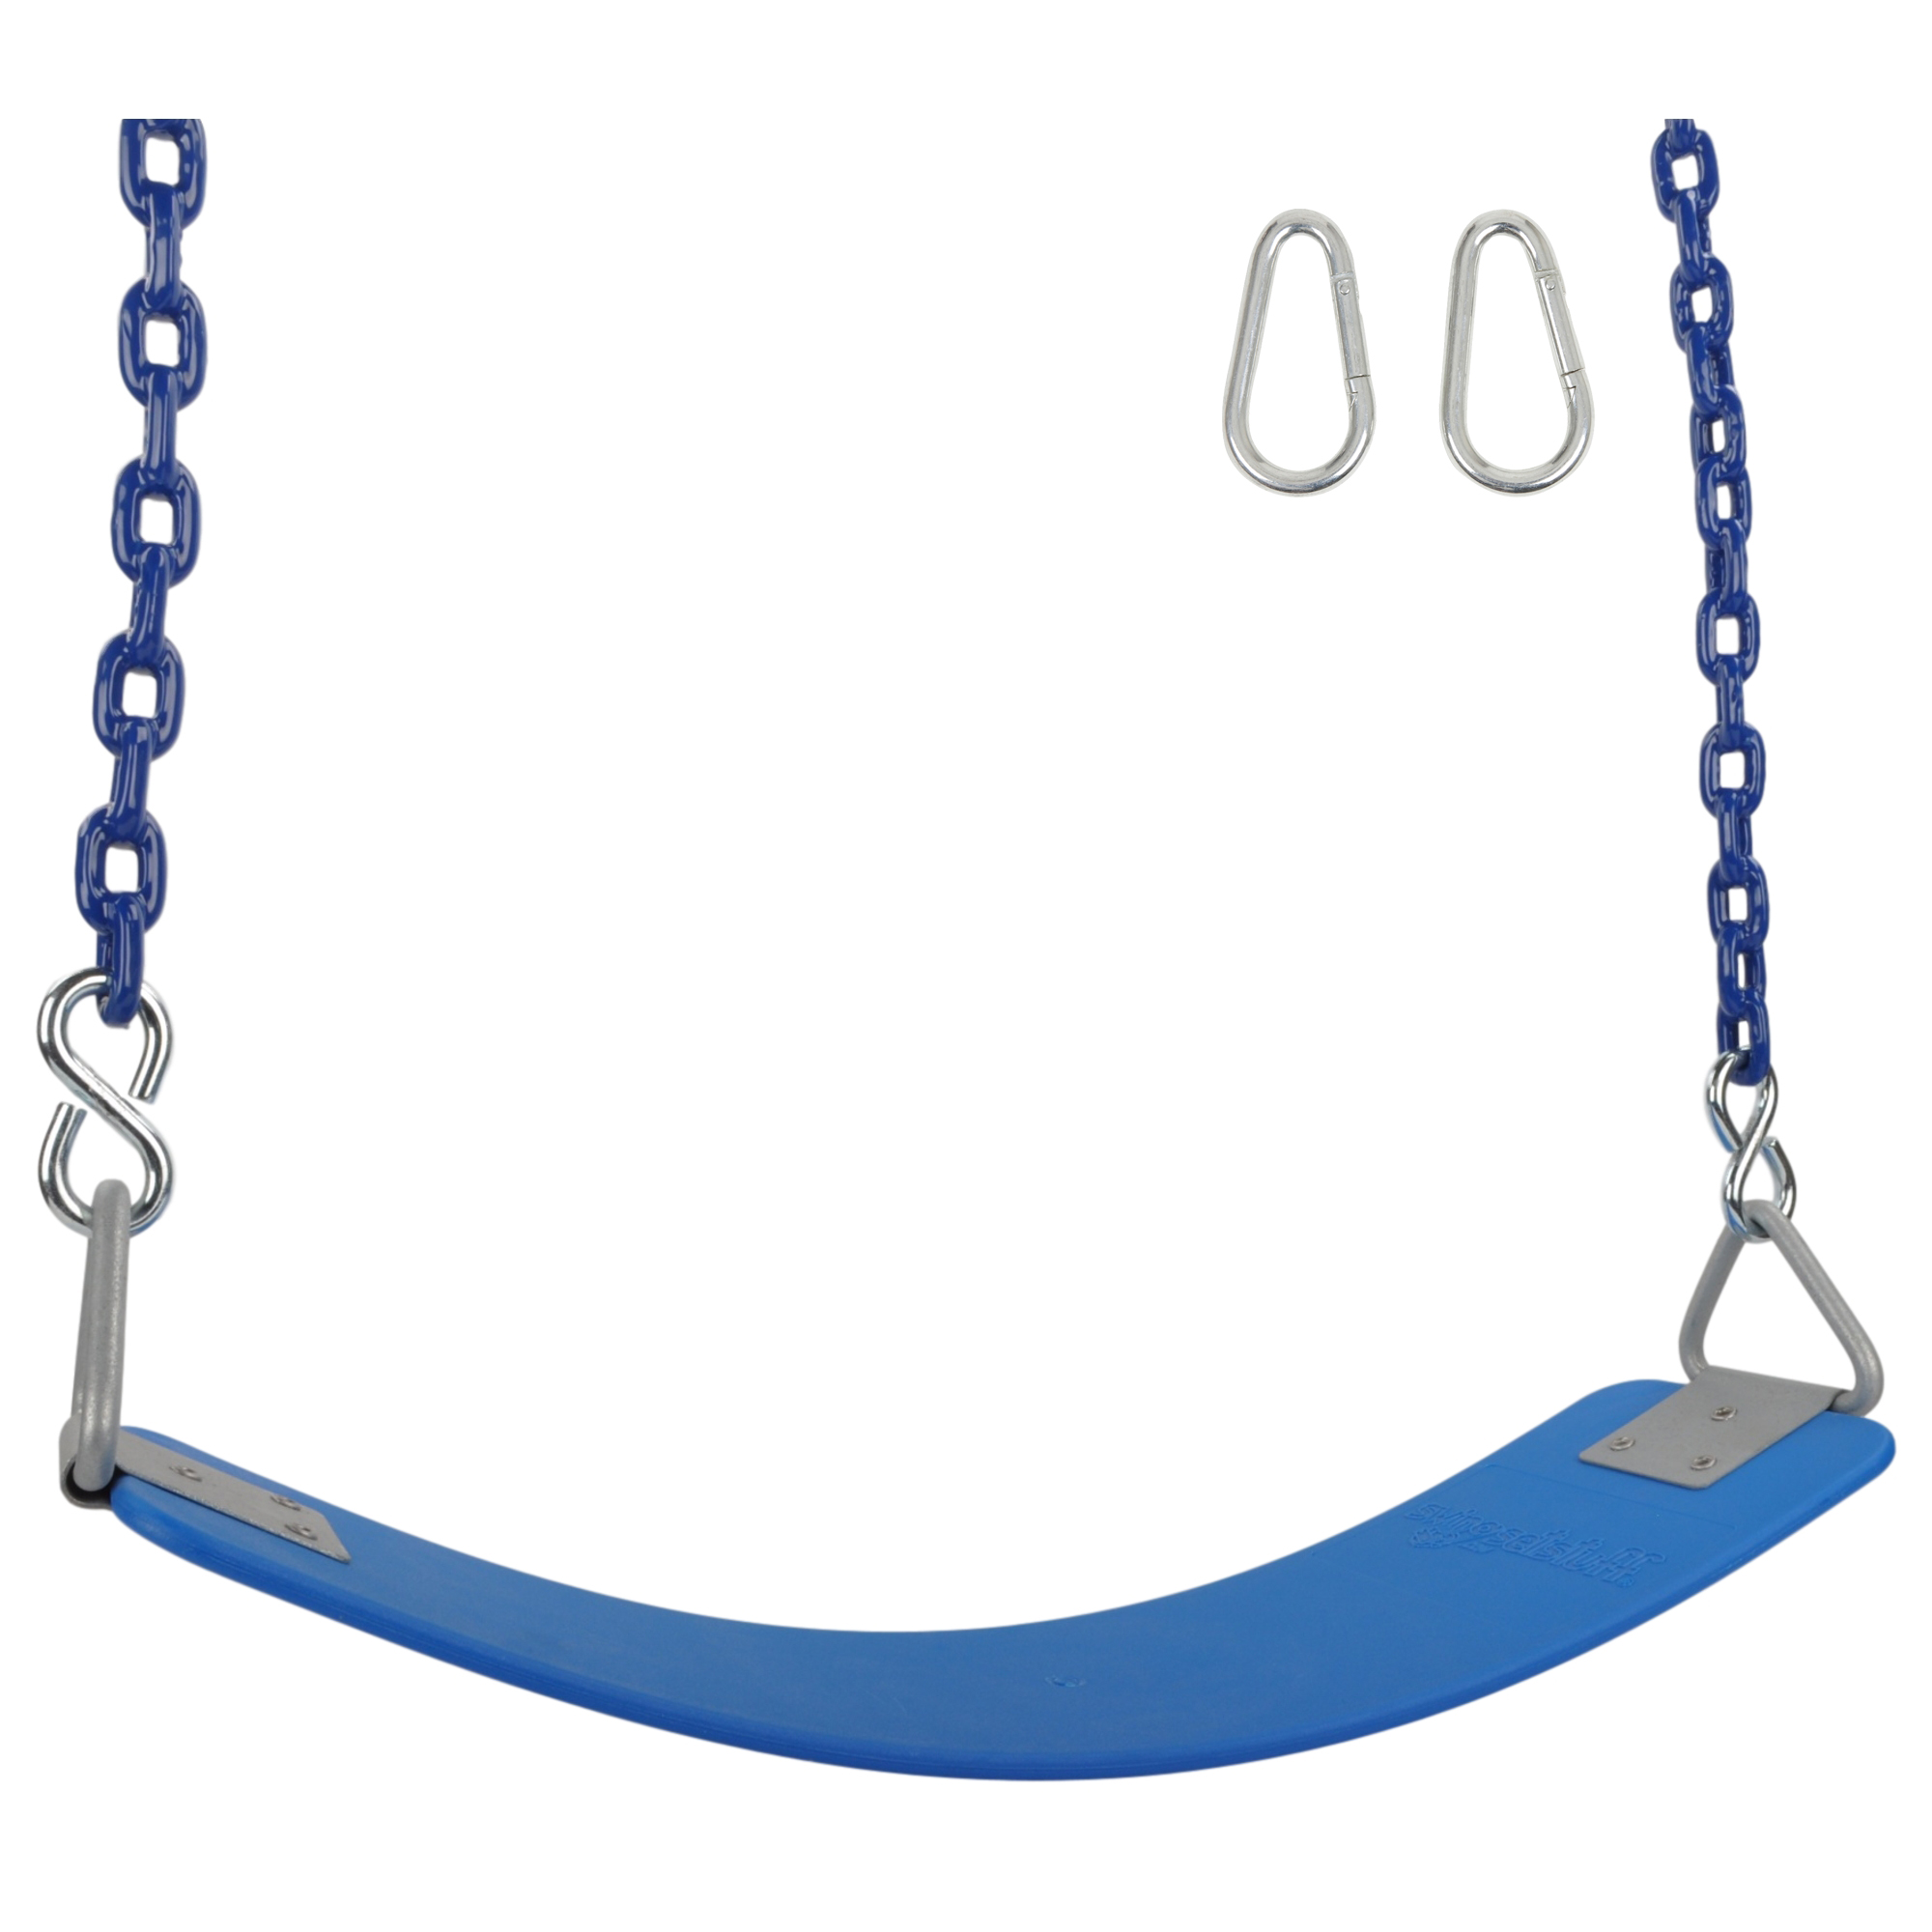 Swing Set Stuff Inc. Commercial Polymer Belt Seat with 8.5 Ft. Coated Chain (Blue)